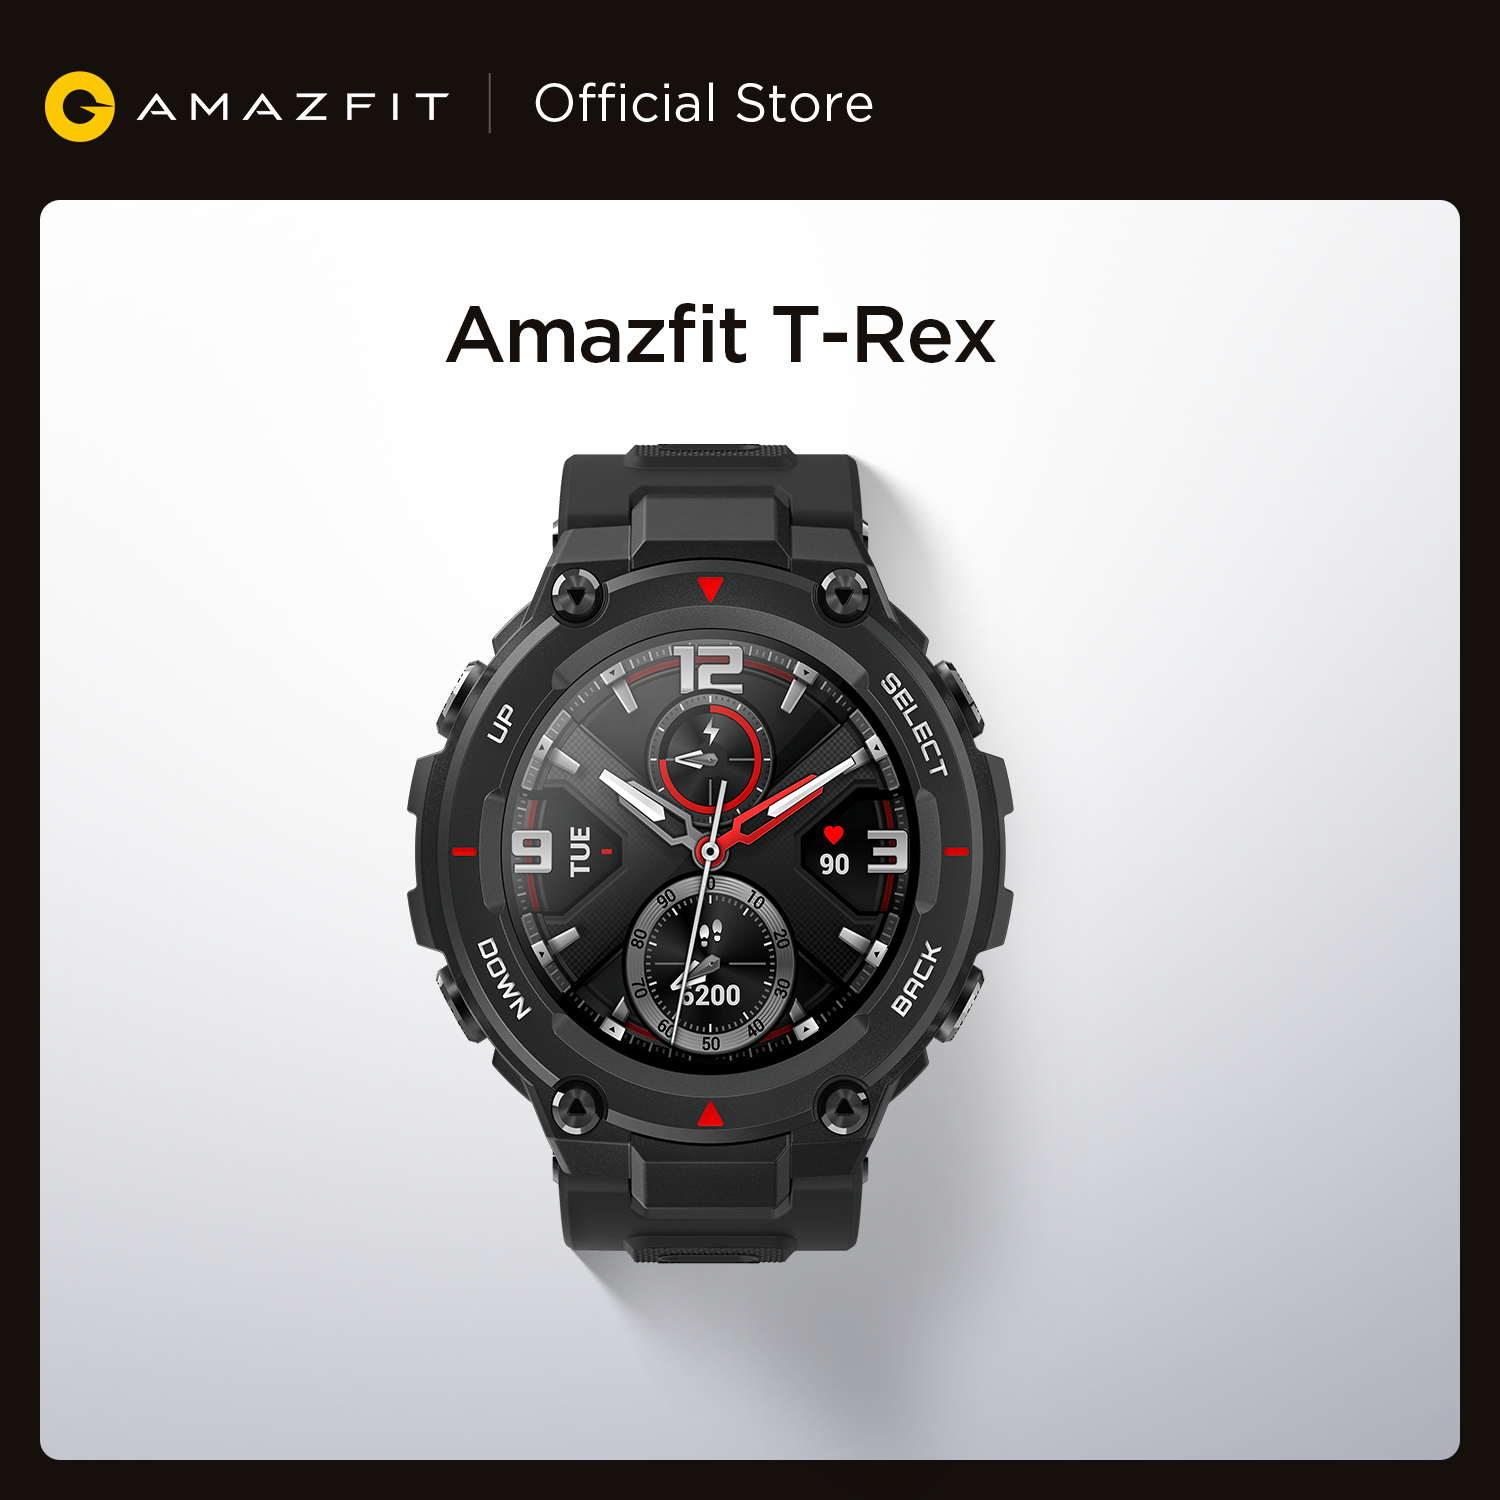 New 2020 CES Amazfit T rex T rex Smartwatch Control Music 5ATM Smart Watch GPS/GLONASS 20 days battery life MIL STD for Android|Smart Watches| - AliExpress